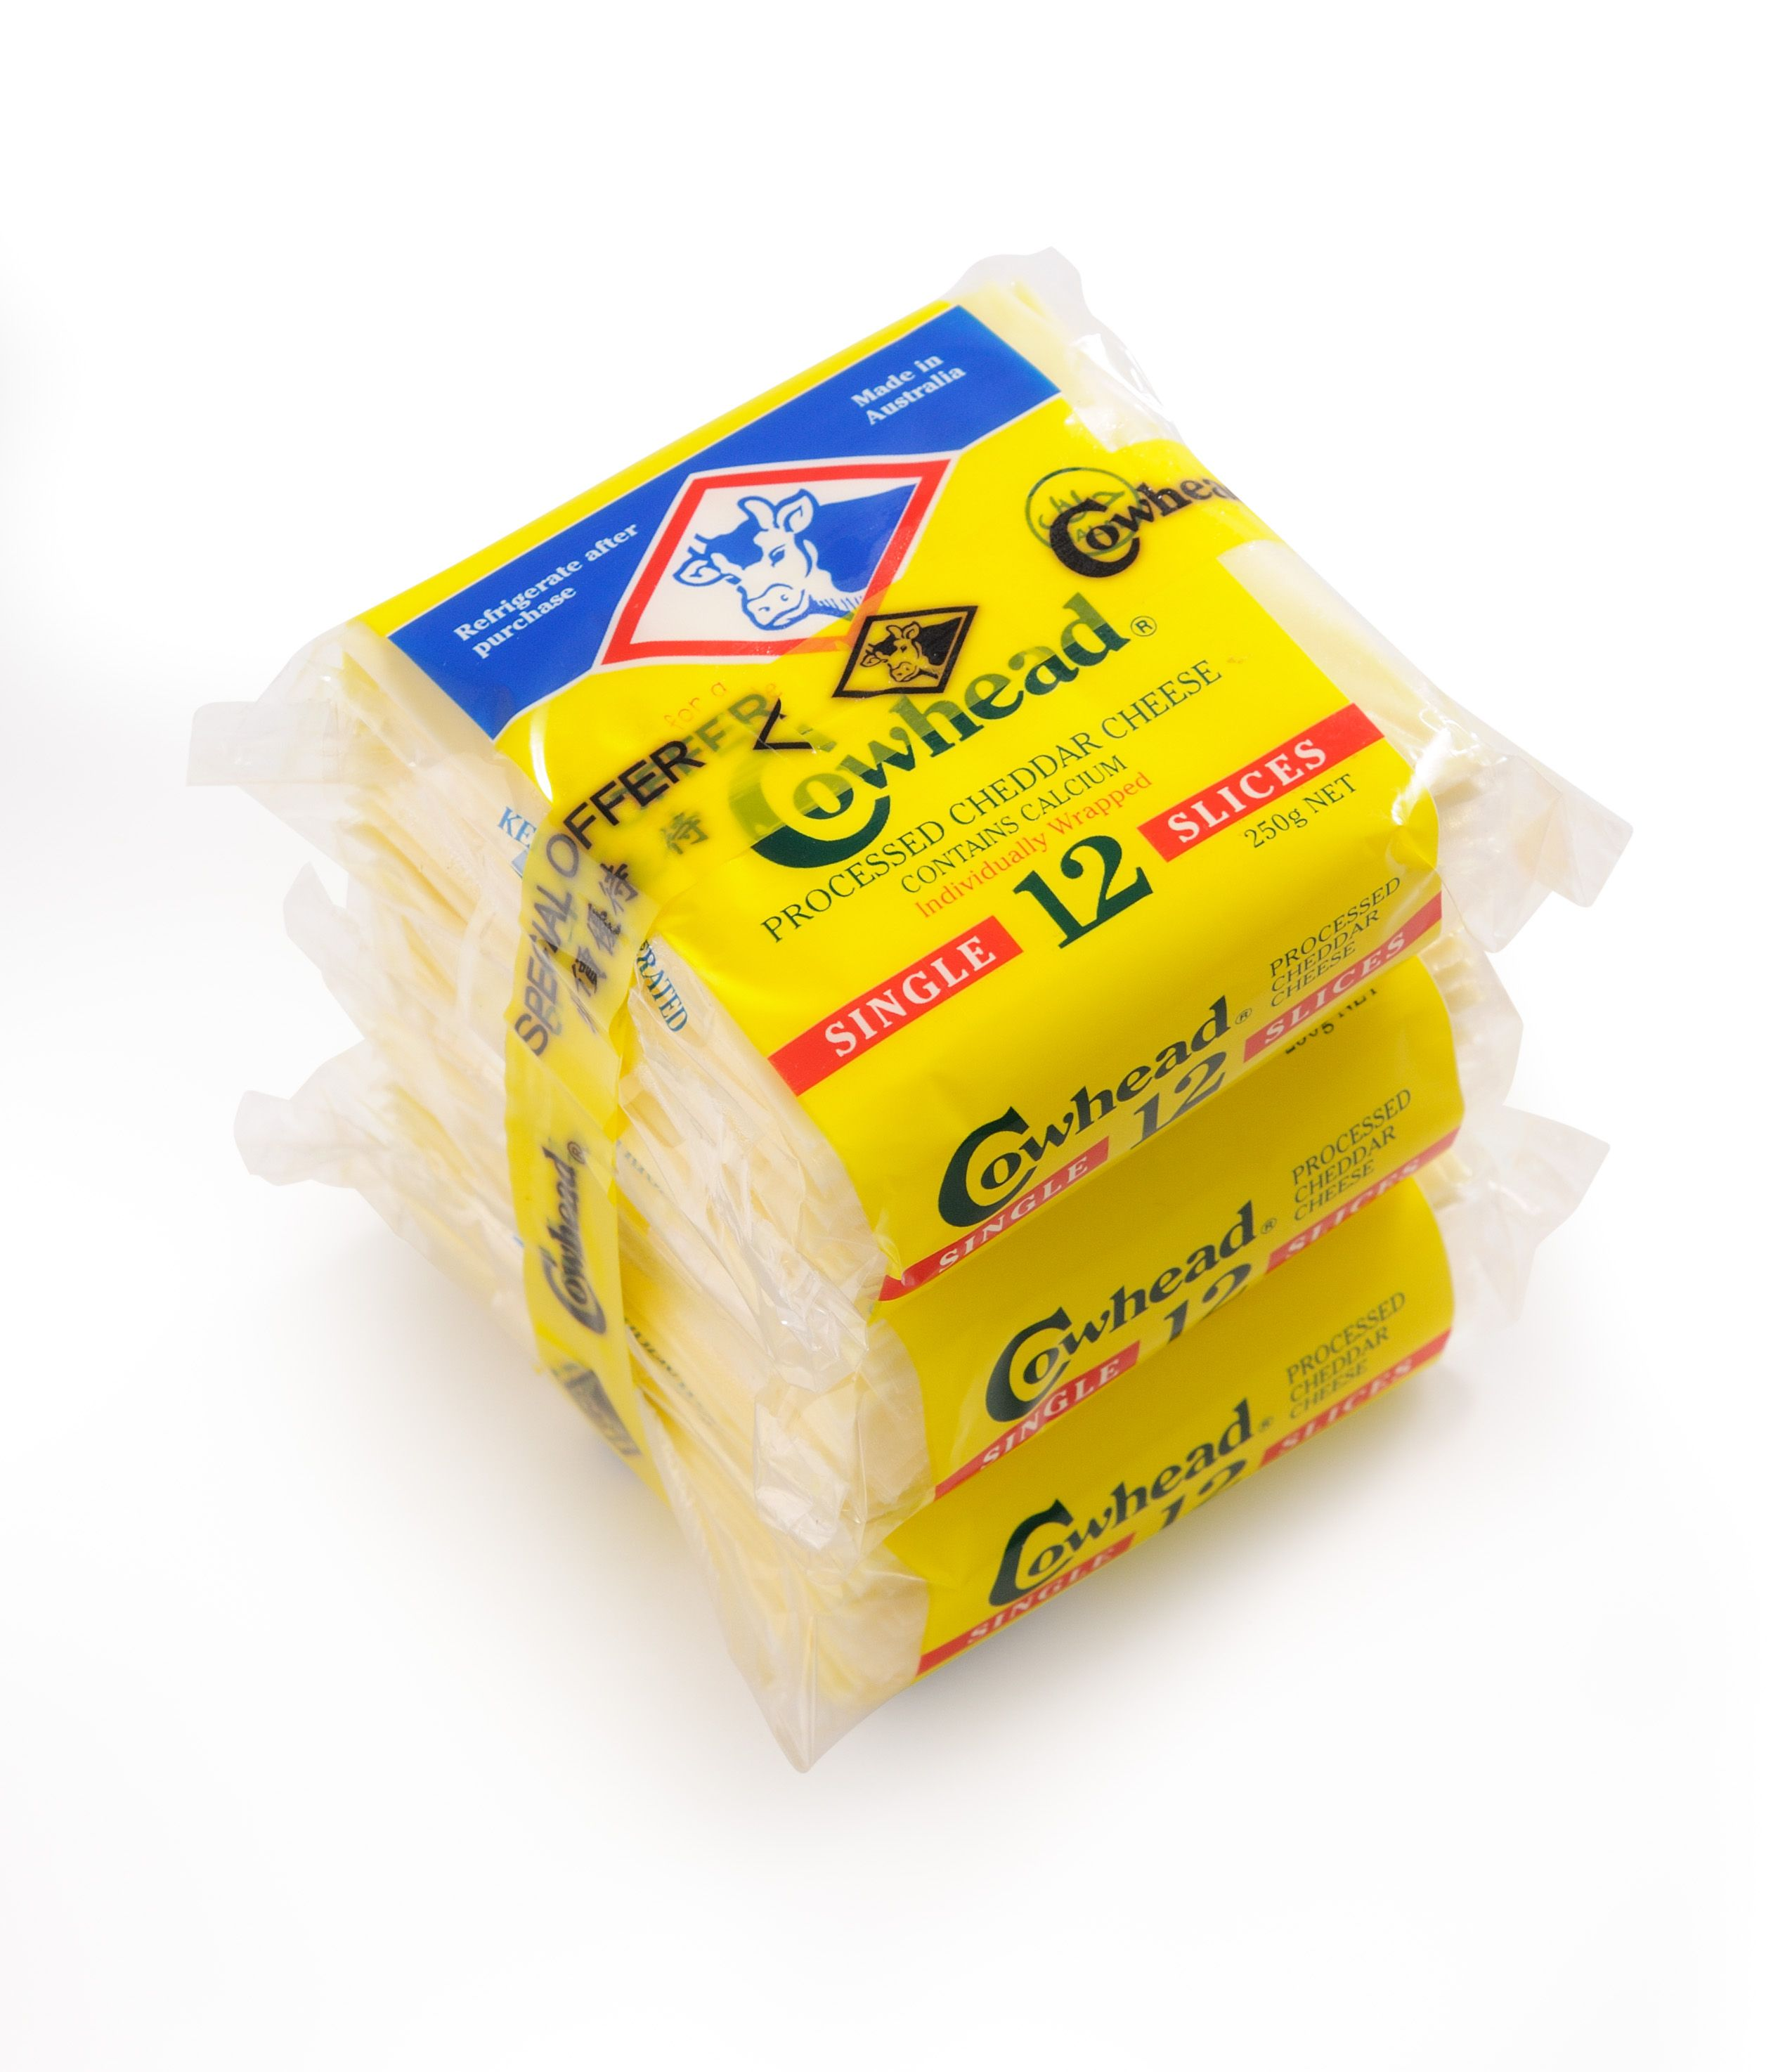 Cowhead Processed Cheese Slices 12s bundle pack